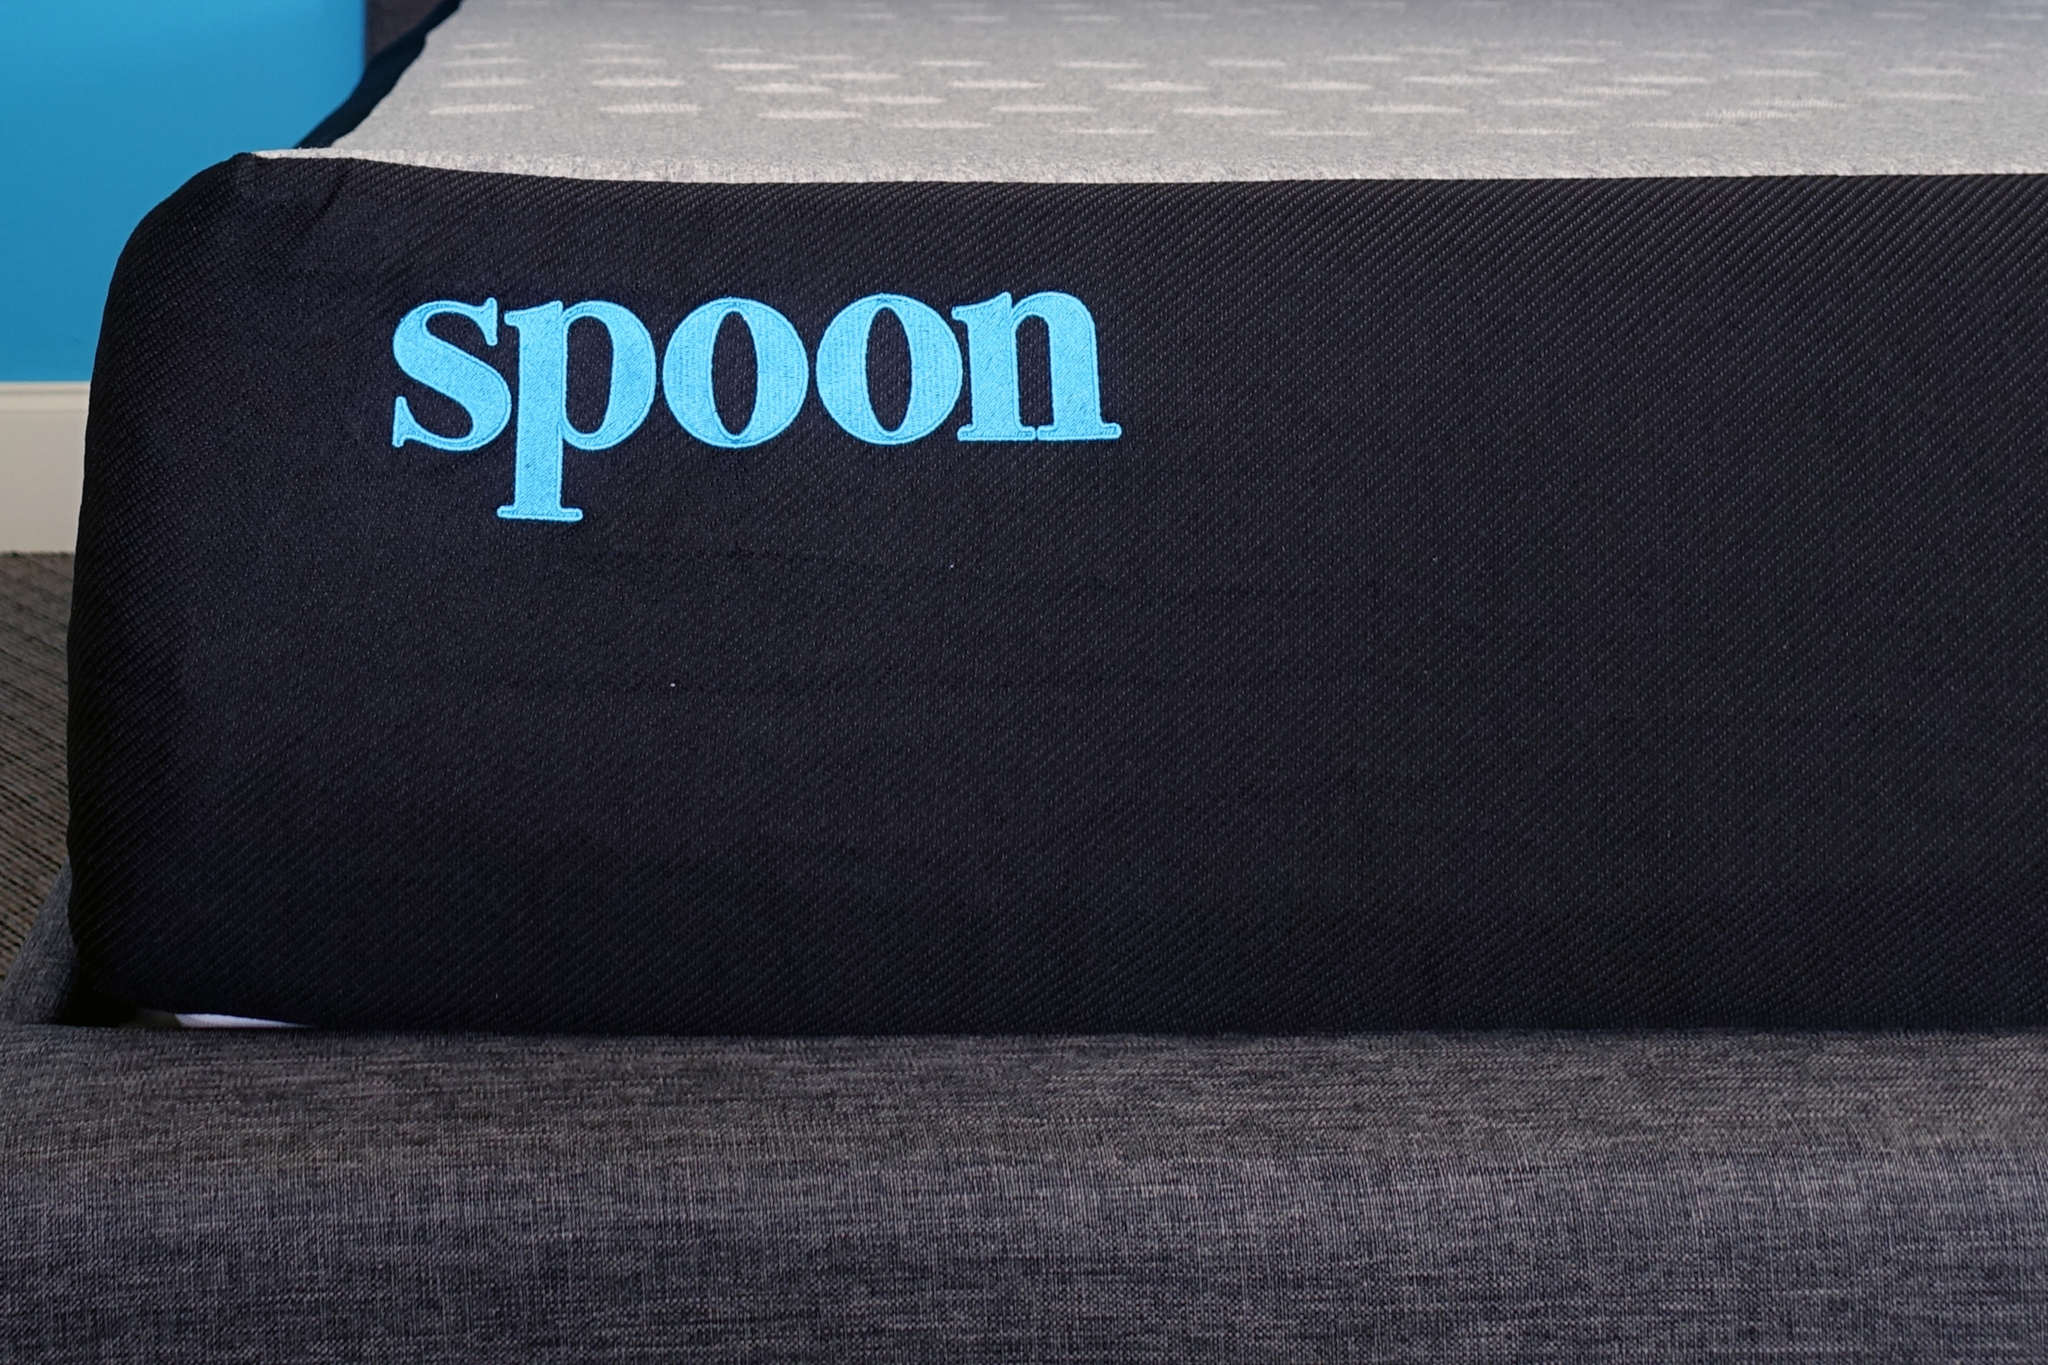 Spoon Sleep Mattress Review by Honest Mattress Reviews